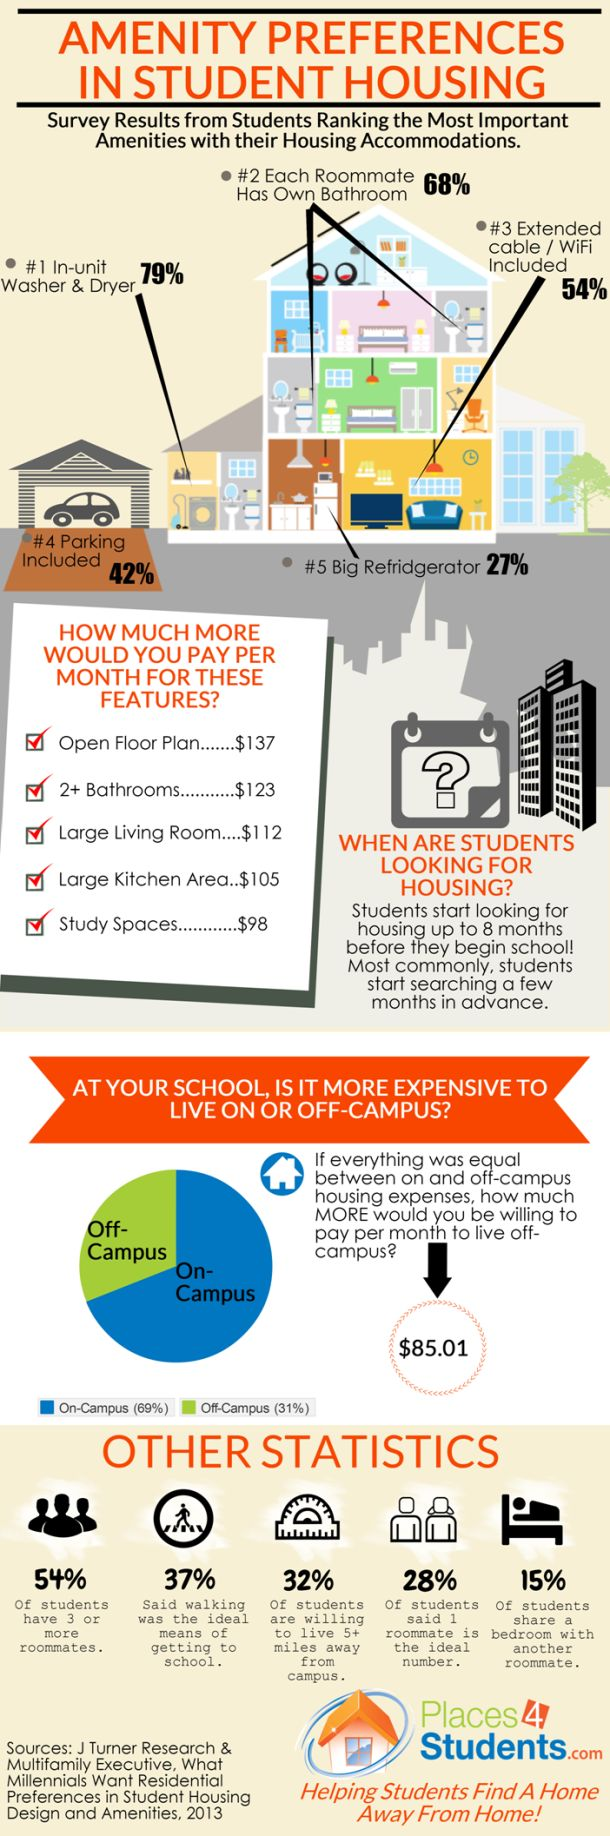 Amenity Preferences In Student Housing [INFOGRAPHIC] #amenity #student #housing